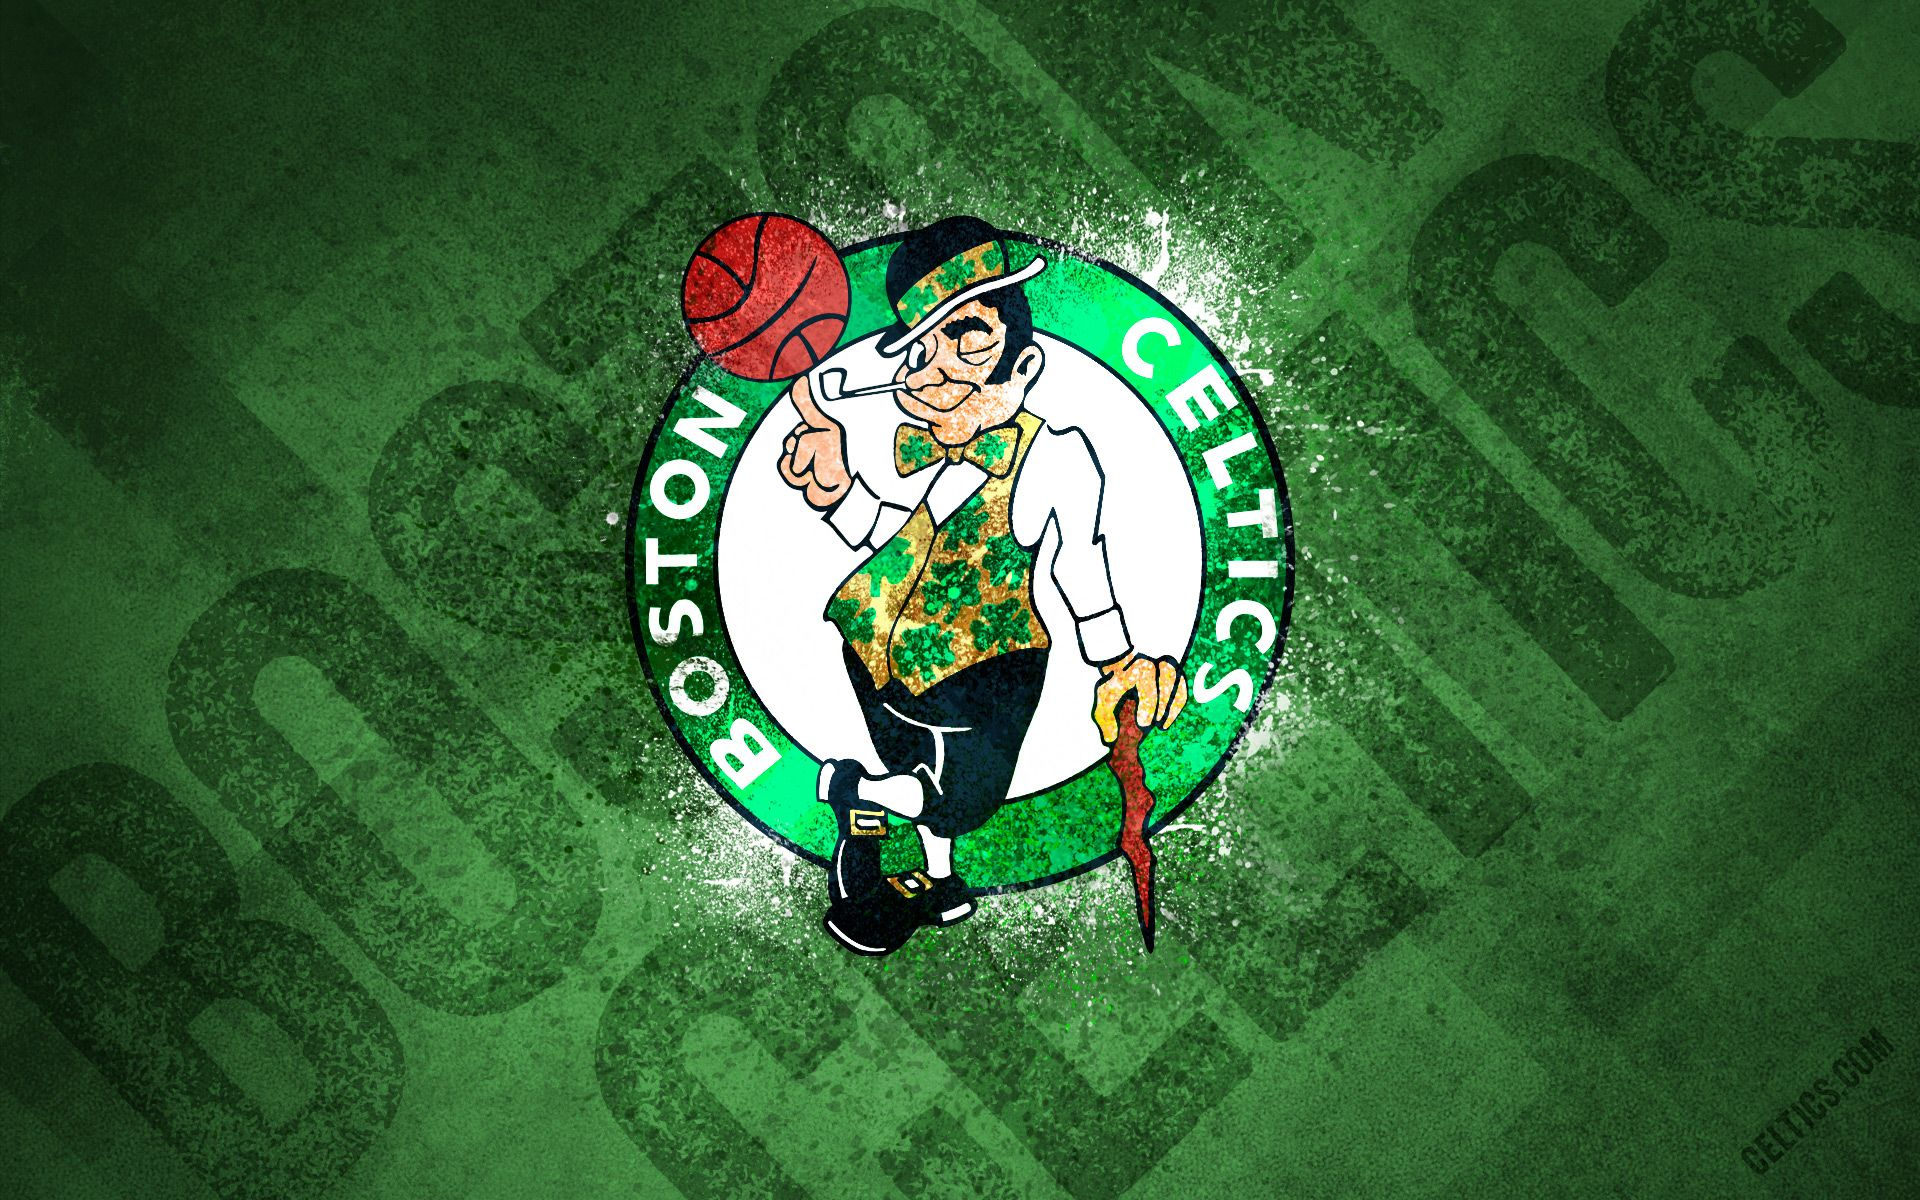 1920x1200 Desktop Wallpaper | Boston Celtics